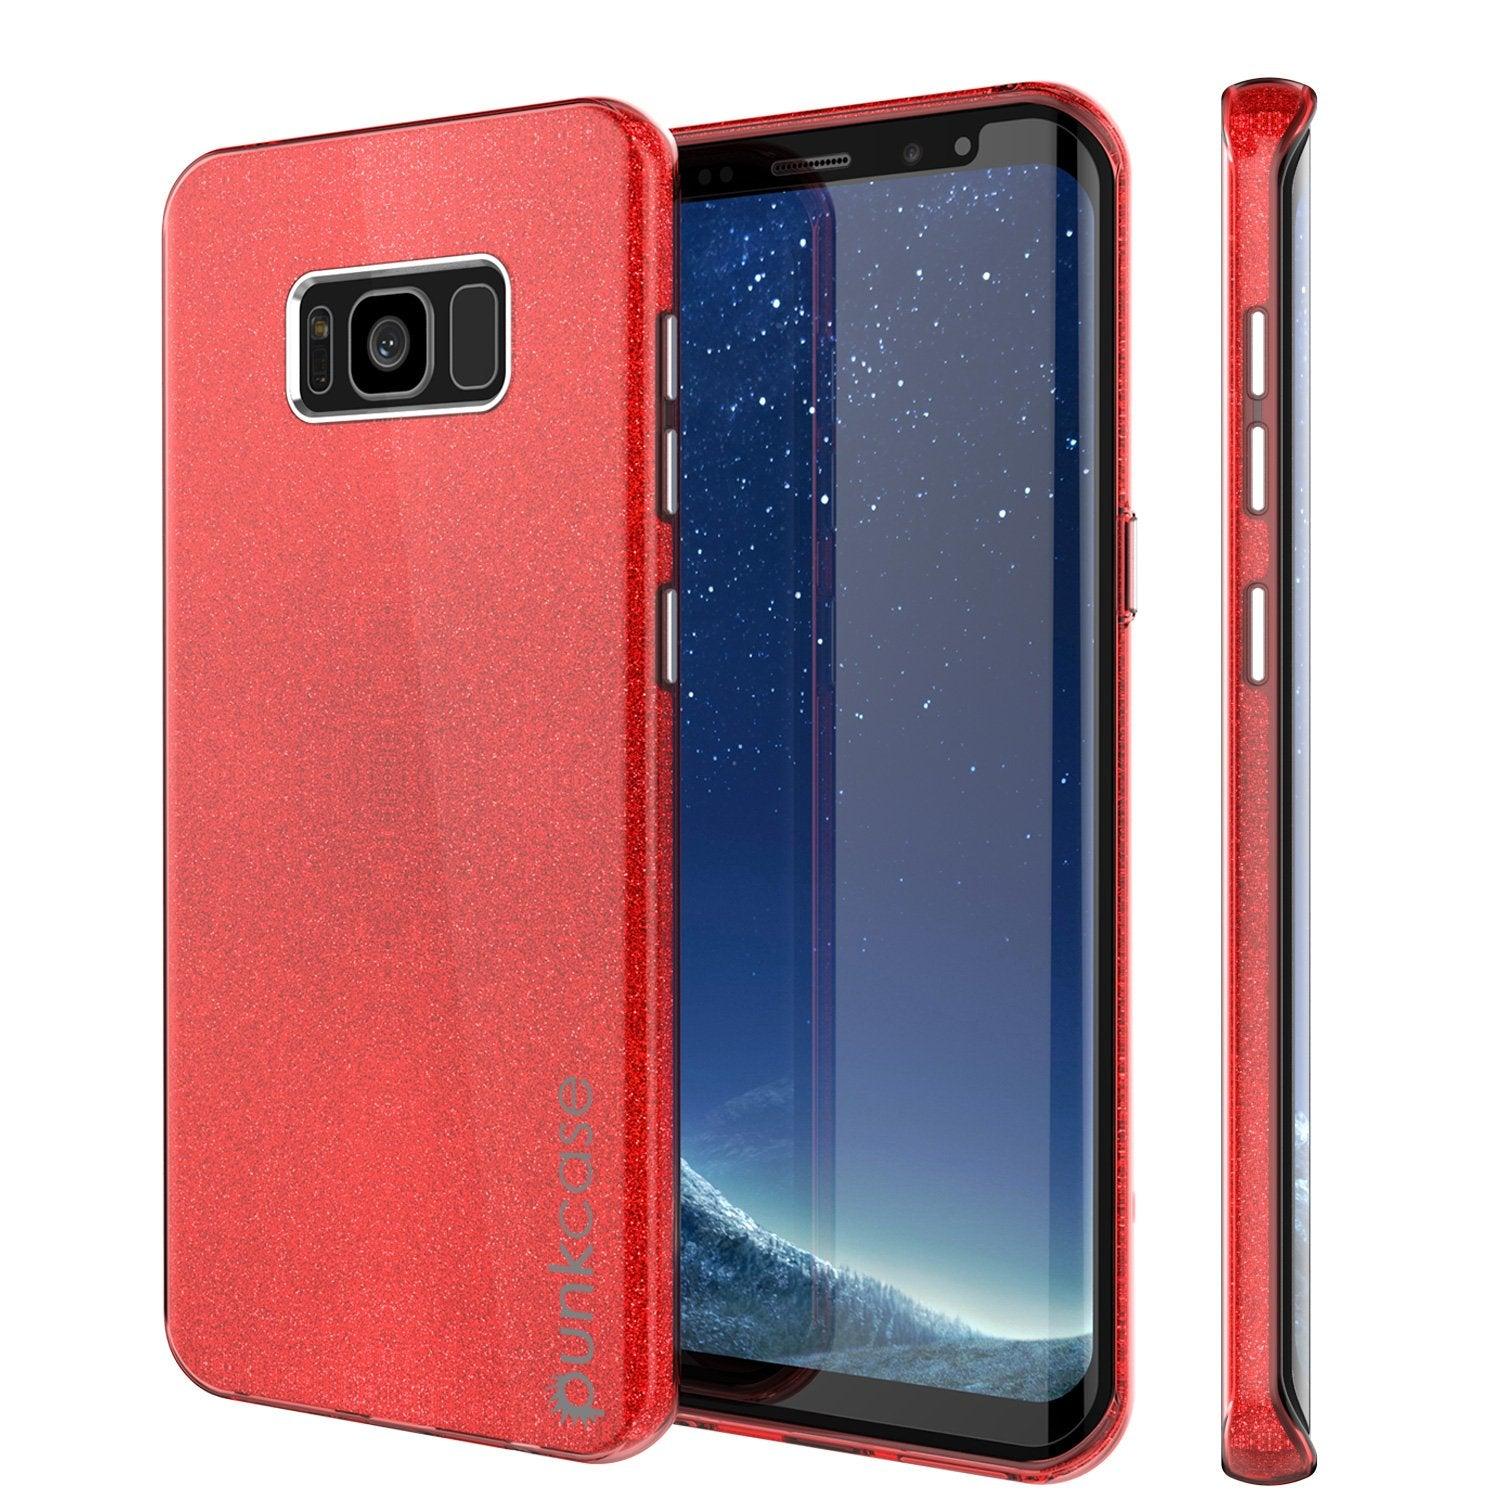 Galaxy S8 Case, Punkcase Galactic 2.0 Series Ultra Slim Protective Armor Cover [Red]